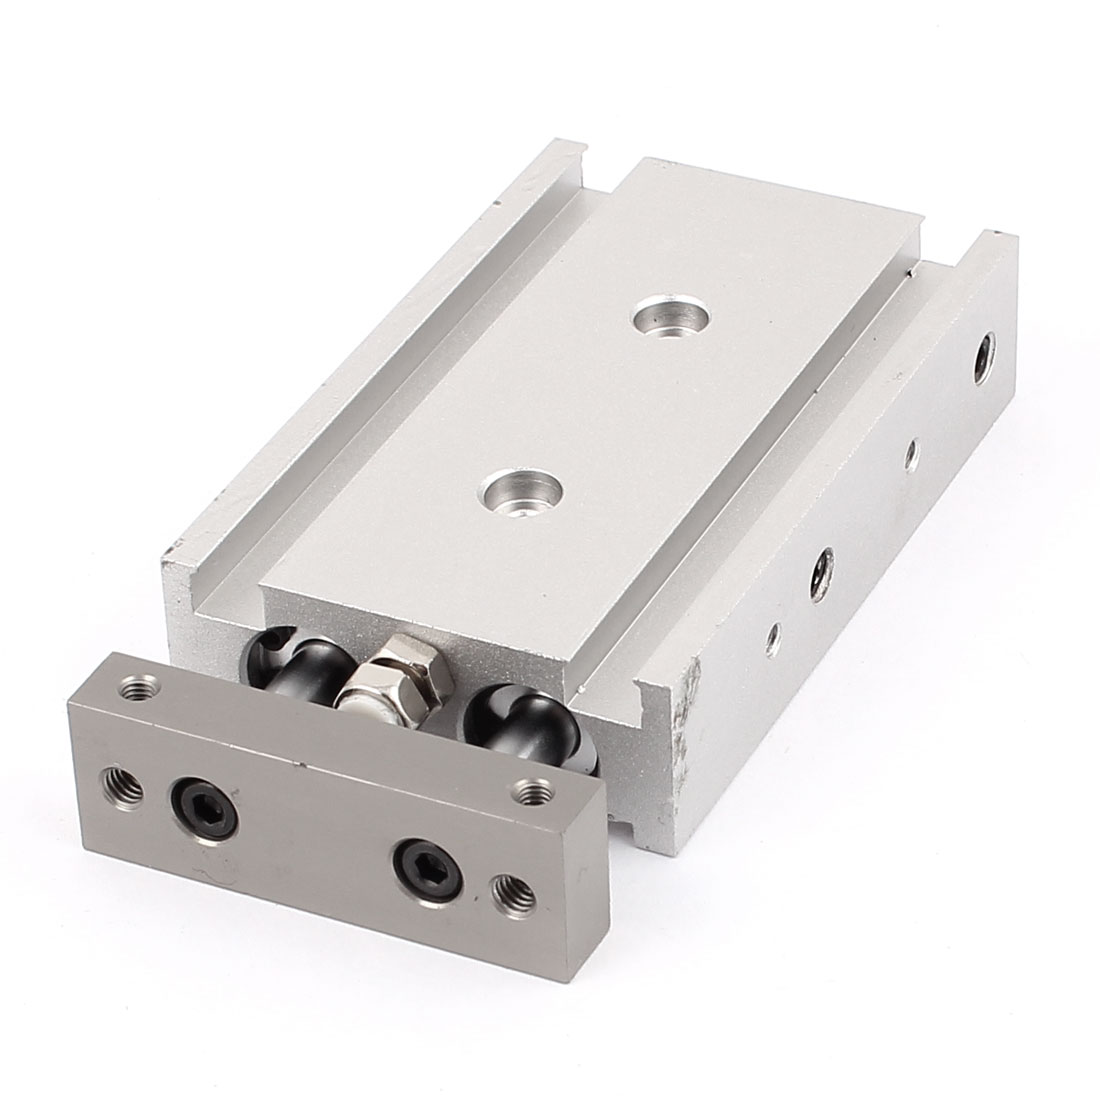 CXSM10x20 Double Rod Dual Acting Compact Aluminum Alloy Pneumatic Air Cylinder 0.7Mpa